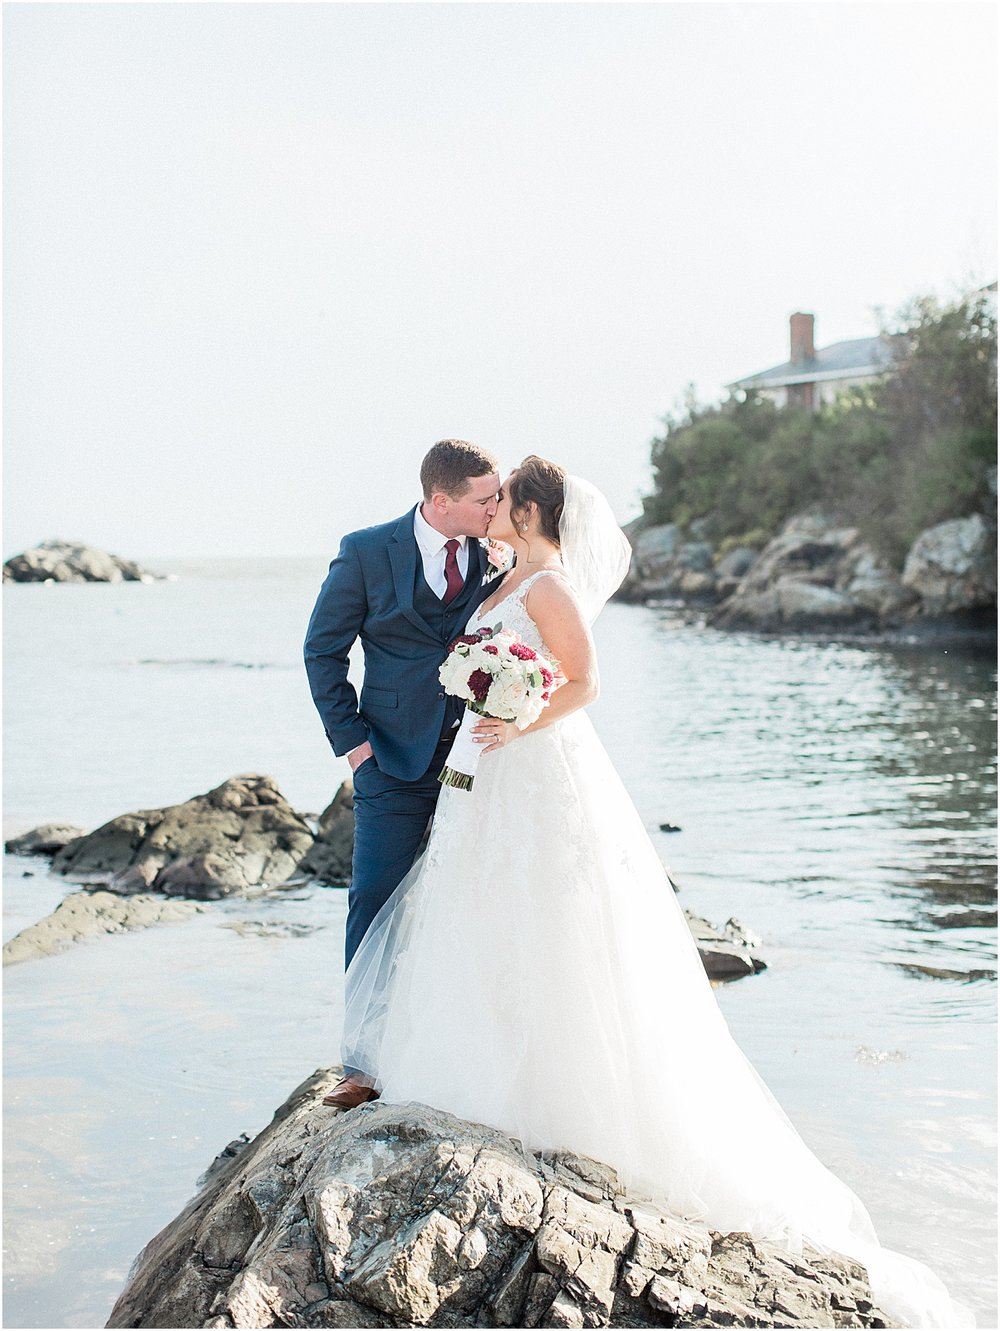 shannon_daniel_dan_atlantic_resort_saint_marys_st_mary_church_fall_newport_catholic_irish_cape_cod_boston_wedding_photographer_meredith_jane_photography_photo_1626.jpg